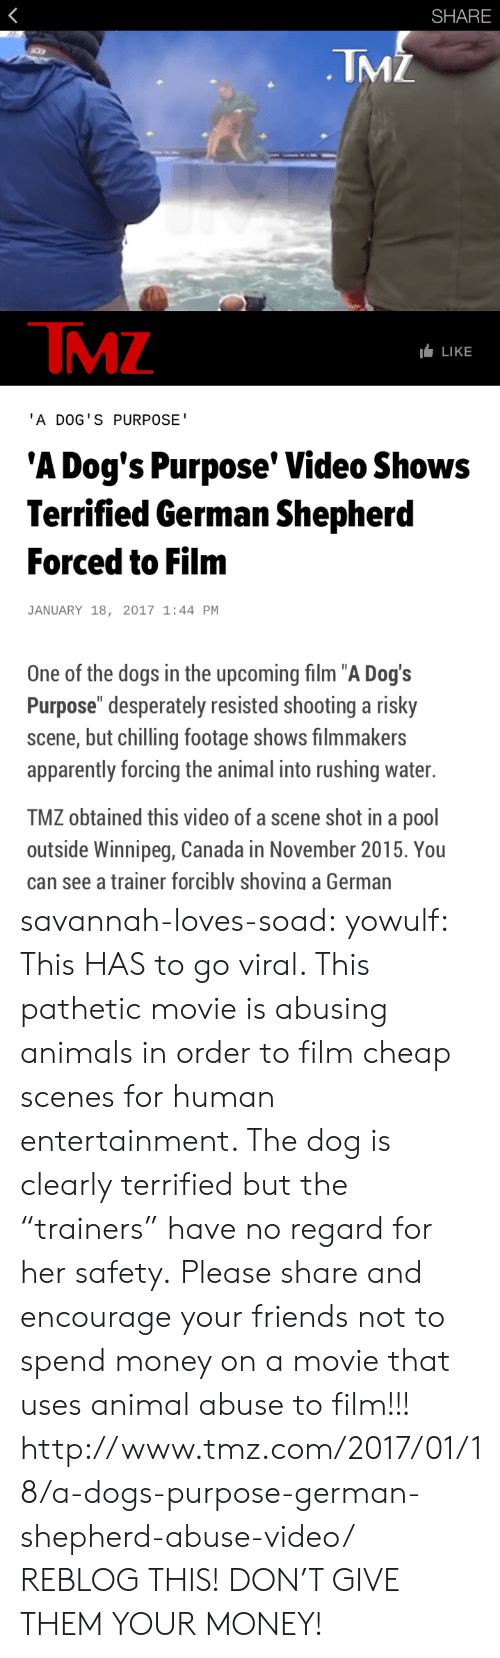 "Obtained: SHARE  TMZ  TMZ  LLIKE  'A DOG'S PURPOSE  'A Dog's Purpose' Video Shows  Terrified German Shepherd  Forced to Film  JANUARY 18, 2017 1:44 PM  One of the dogs in the upcoming film ""A Dog's  Purpose"" desperately resisted shooting a risky  scene, but chilling footage shows filmmakers  apparently forcing the animal into rushing water.  TMZ obtained this video of a scene shot in a pool  outside Winnipeg, Canada in November 2015. You  can see a trainer forcibly shoving a German savannah-loves-soad:  yowulf:  This HAS to go viral. This pathetic movie is abusing animals in order to film cheap scenes for human entertainment. The dog is clearly terrified but the ""trainers"" have no regard for her safety.  Please share and encourage your friends not to spend money on a movie that uses animal abuse to film!!!  http://www.tmz.com/2017/01/18/a-dogs-purpose-german-shepherd-abuse-video/   REBLOG THIS! DON'T GIVE THEM YOUR MONEY!"